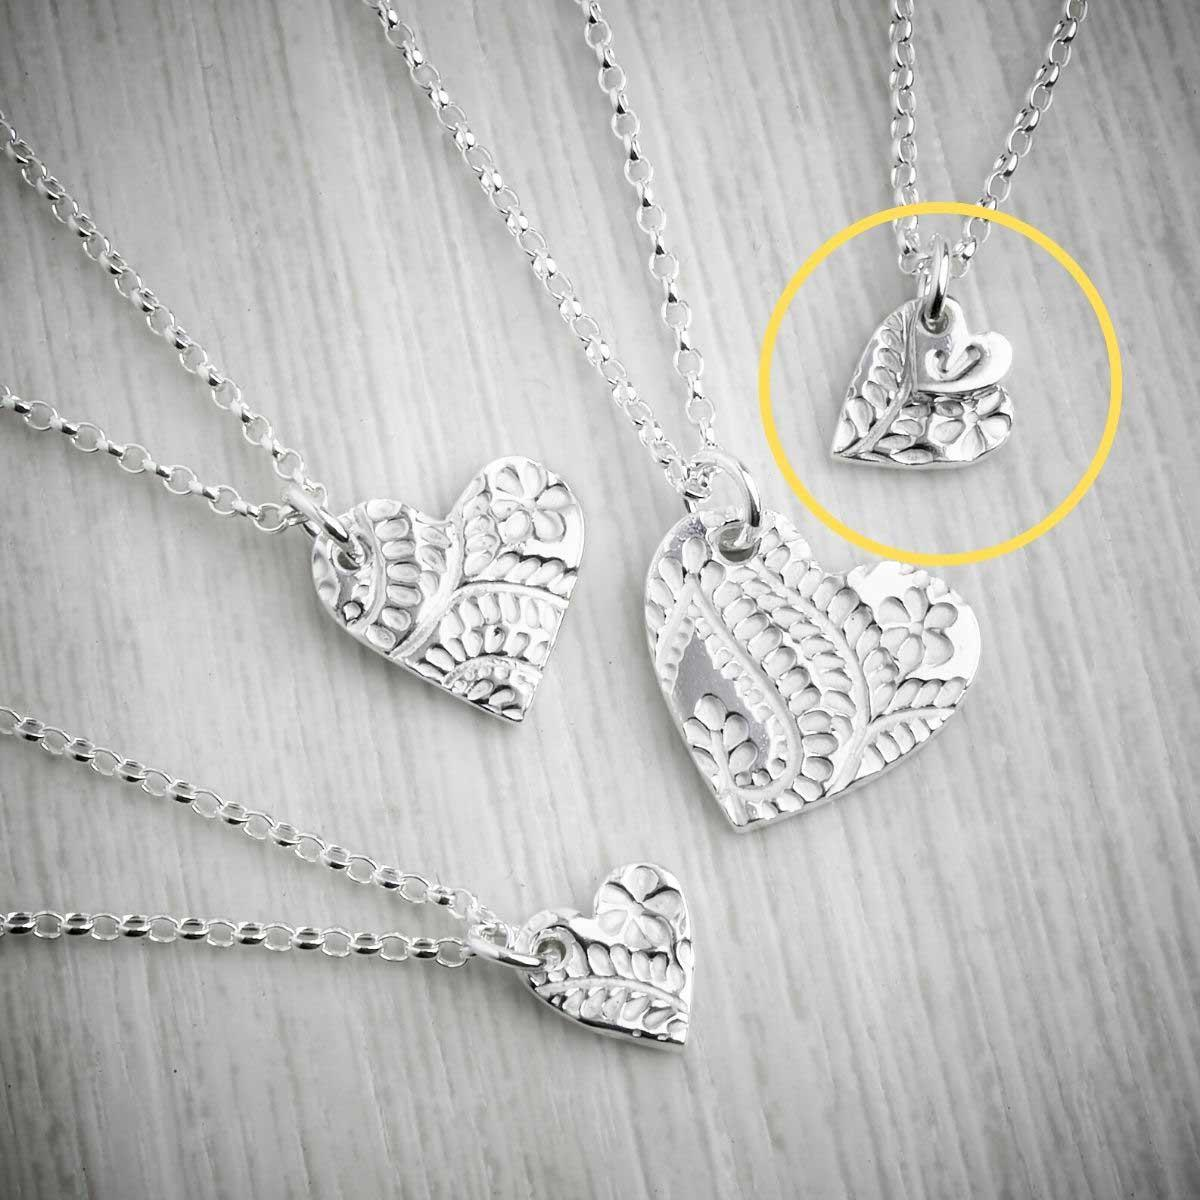 Silver Clay Floral Heart Necklaces by Elin Mair. Image property of THE JEWELLERY MAKERS.